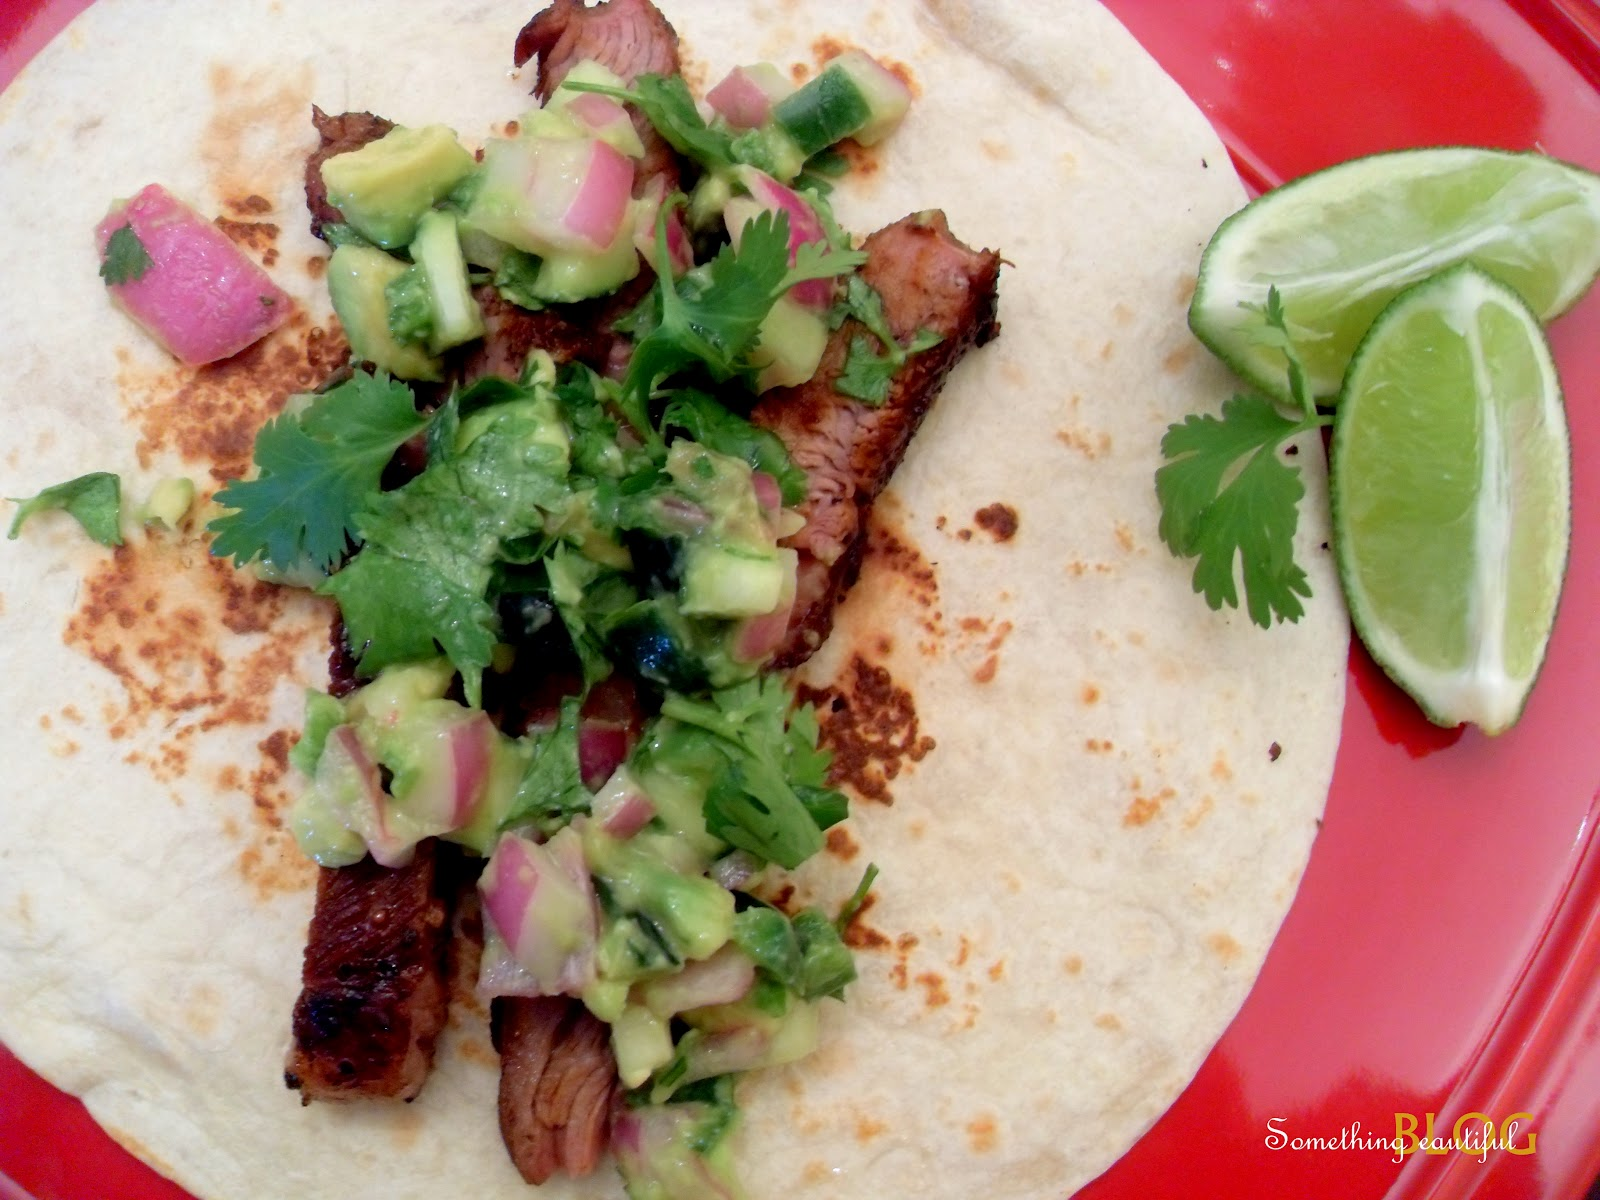 Something Beautiful: Steak Tacos with Cucumber-Avocado Salsa